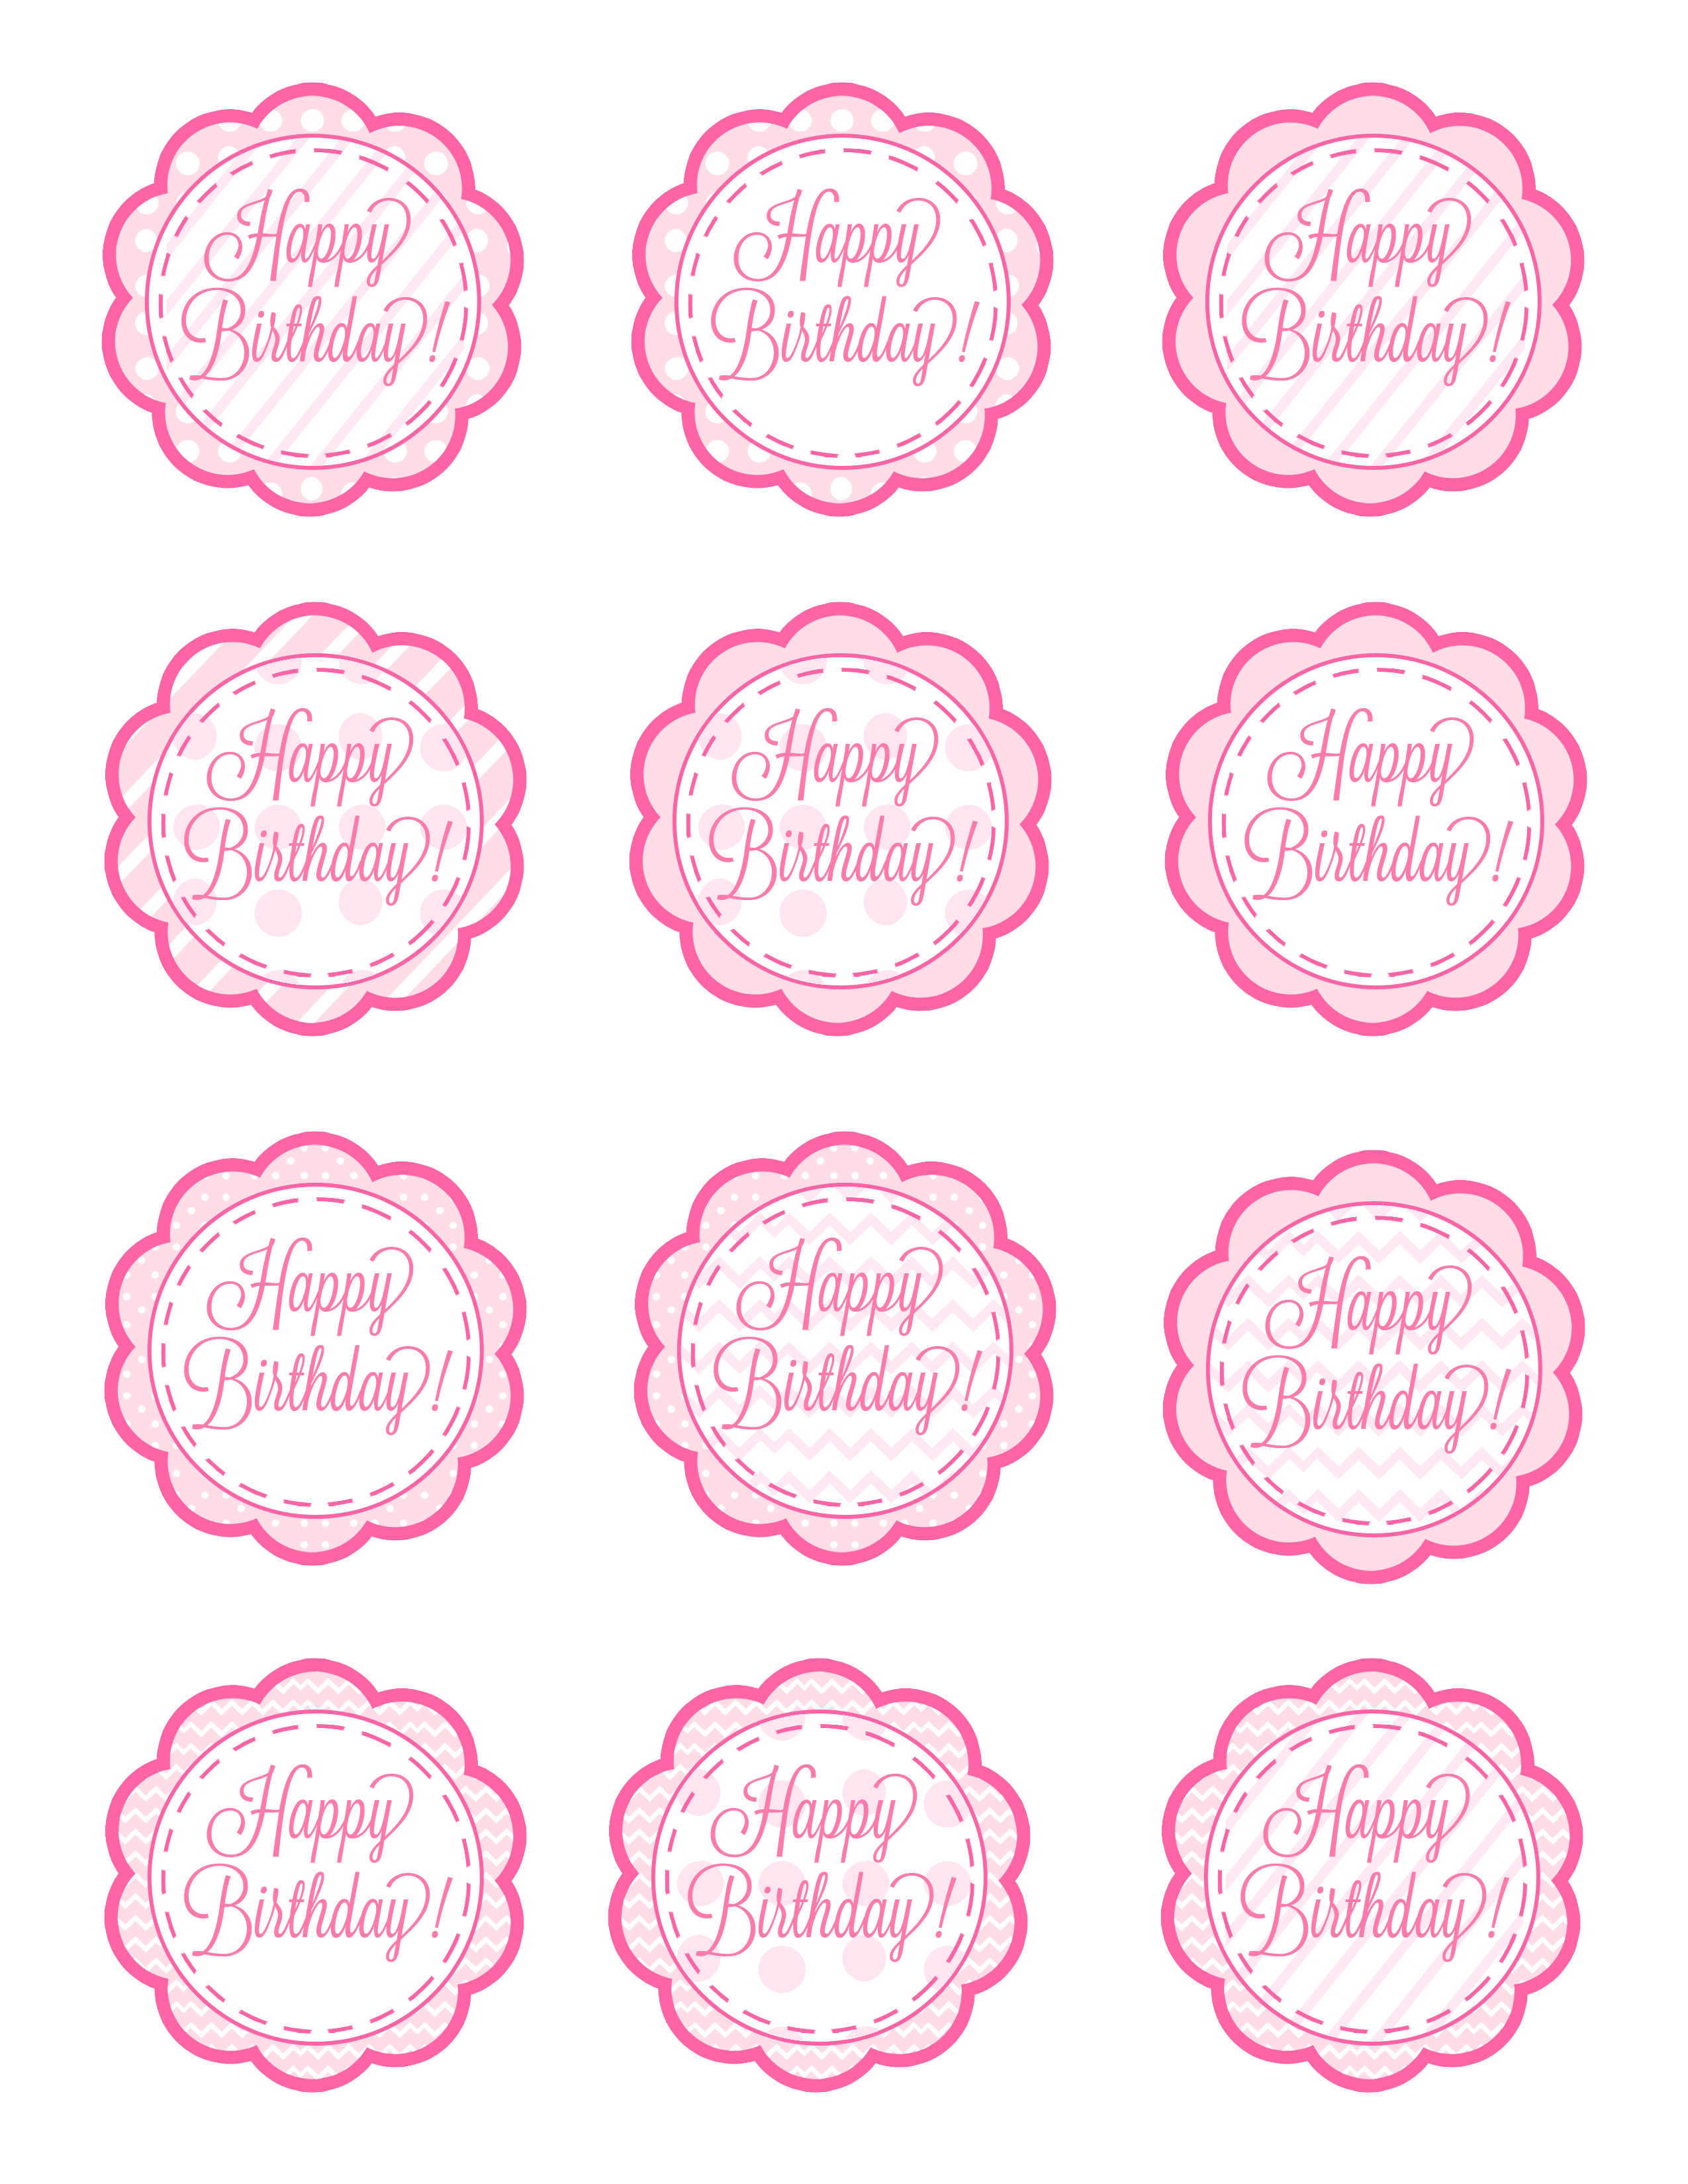 6 Images of Free Printable Birthday Cupcake Toppers